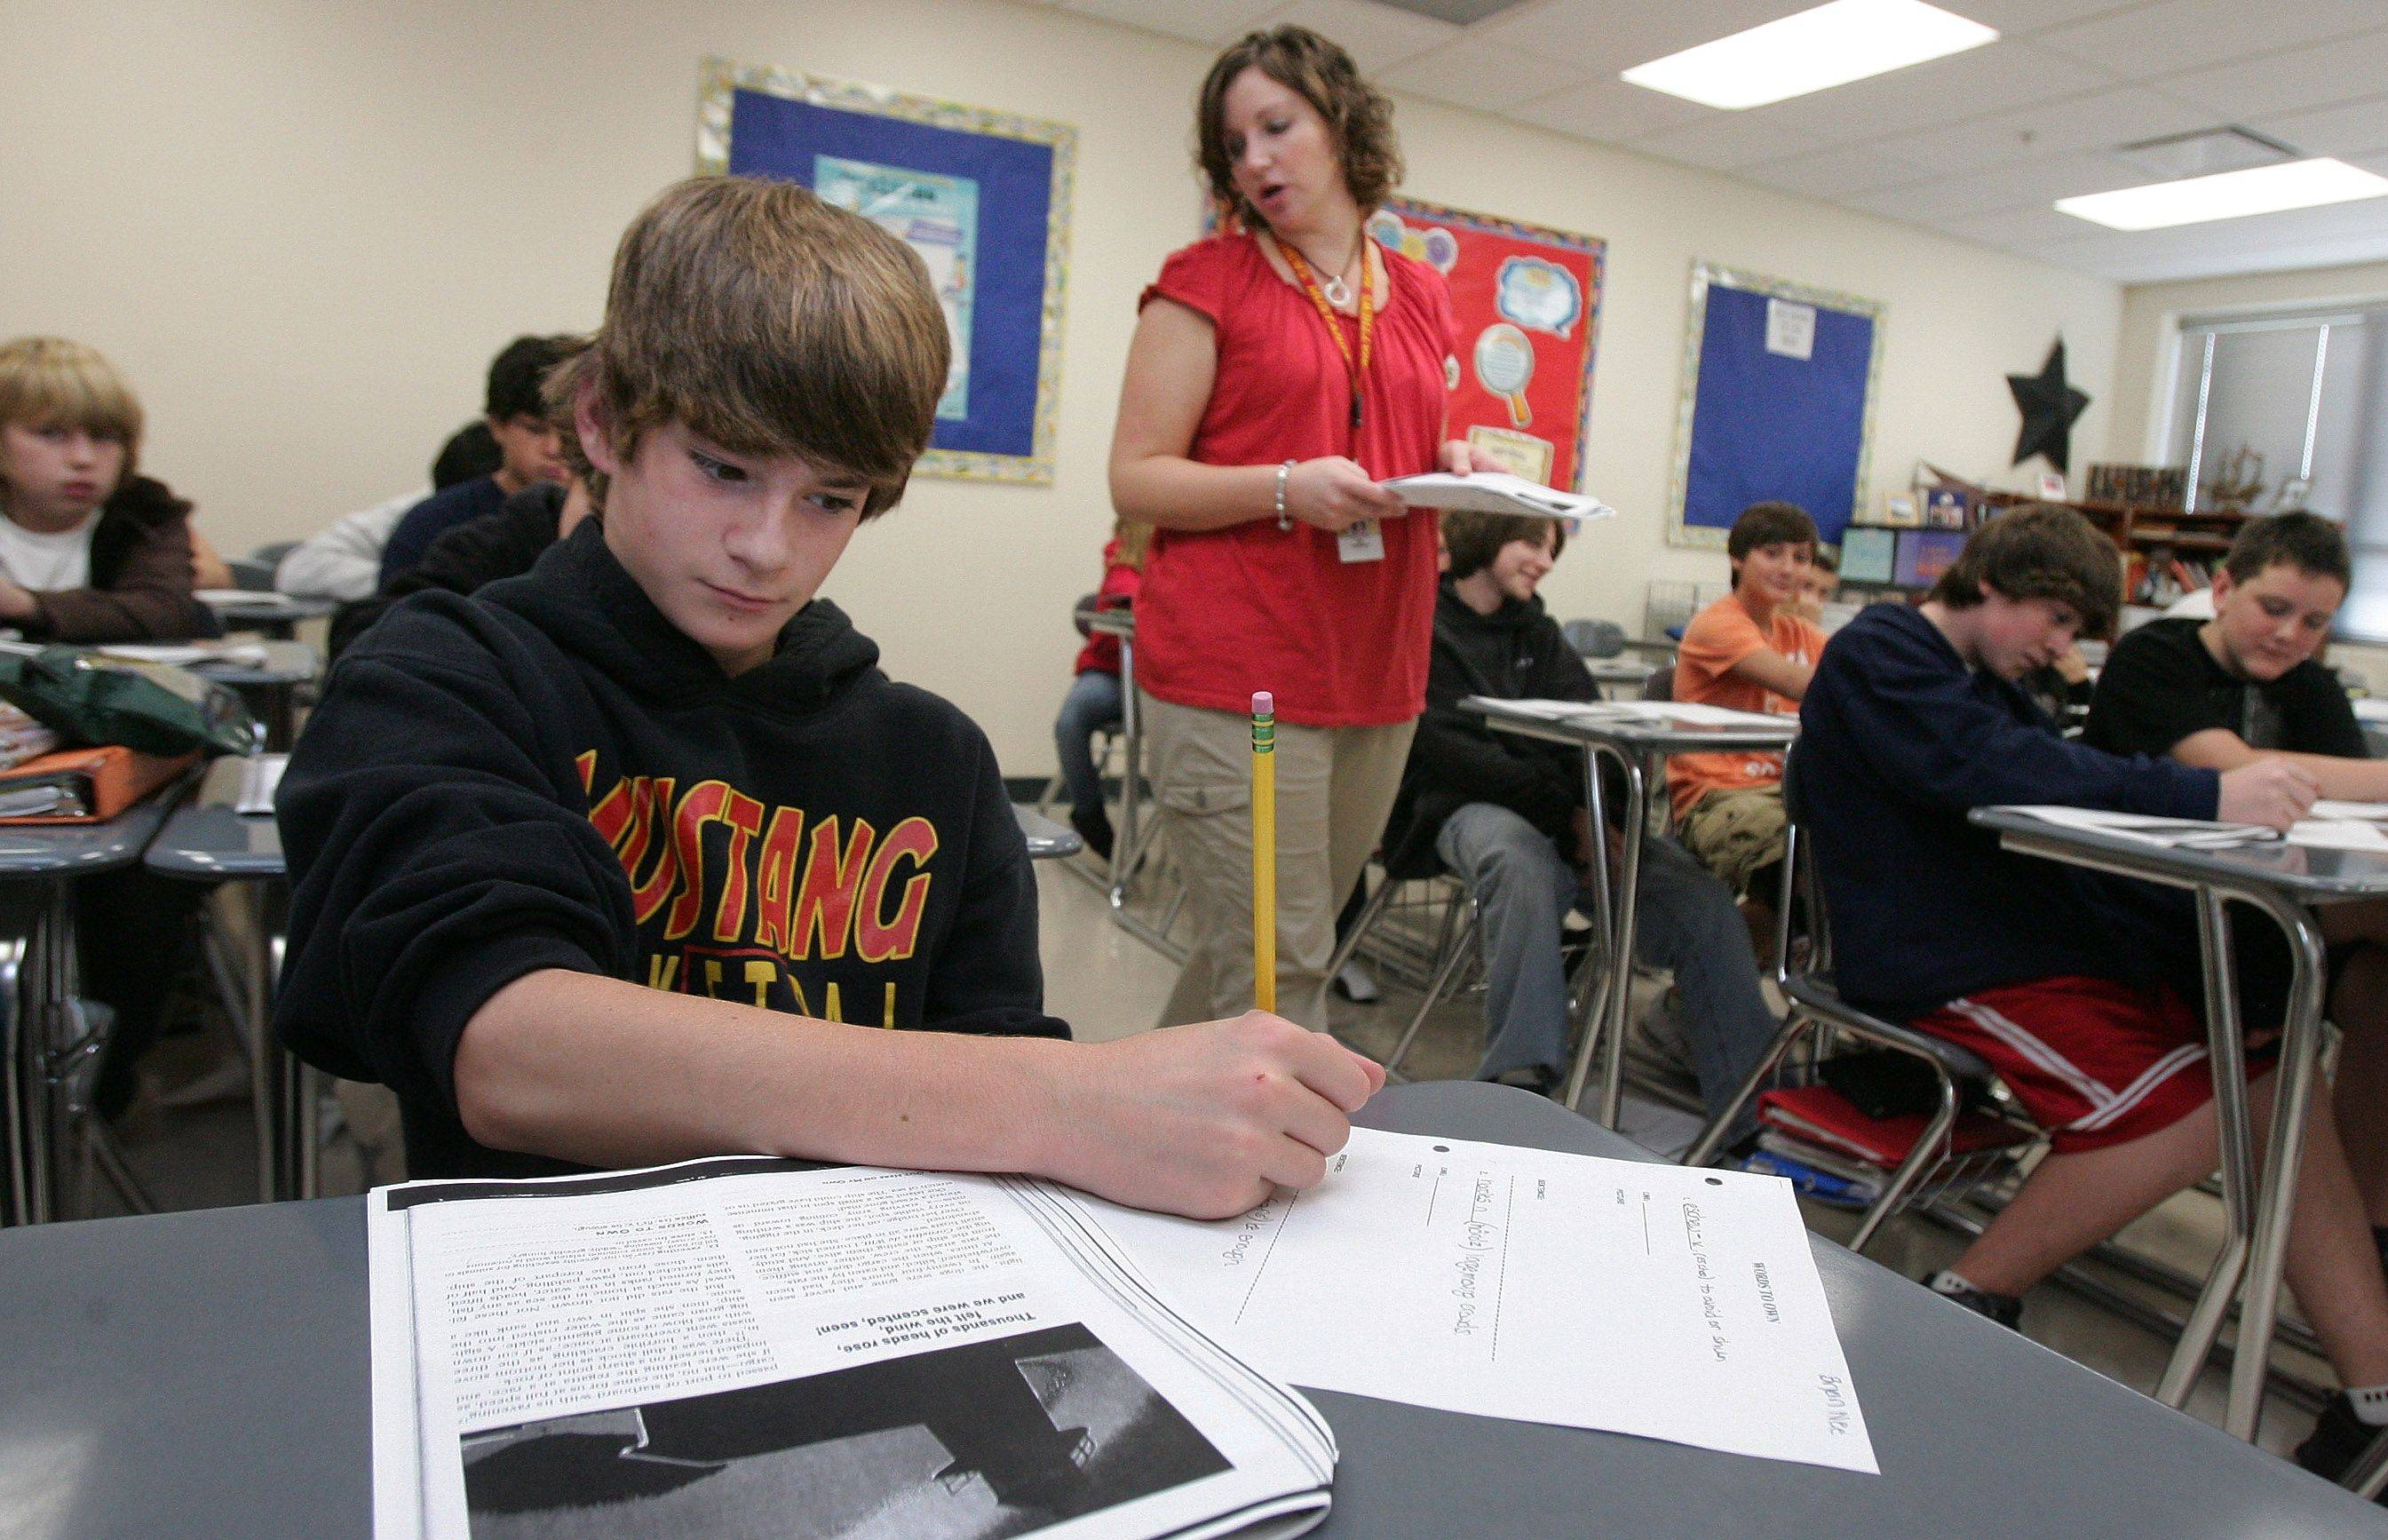 Seventh-grader Bryan Nee, 12, takes notes during a language arts lesson by teacher Brooke Farrant at Matthews Middle School in Island Lake. Matthews was one of three Wauconda District 118 schools that met adequate yearly progress standards established under the No Child Left Behind Act.